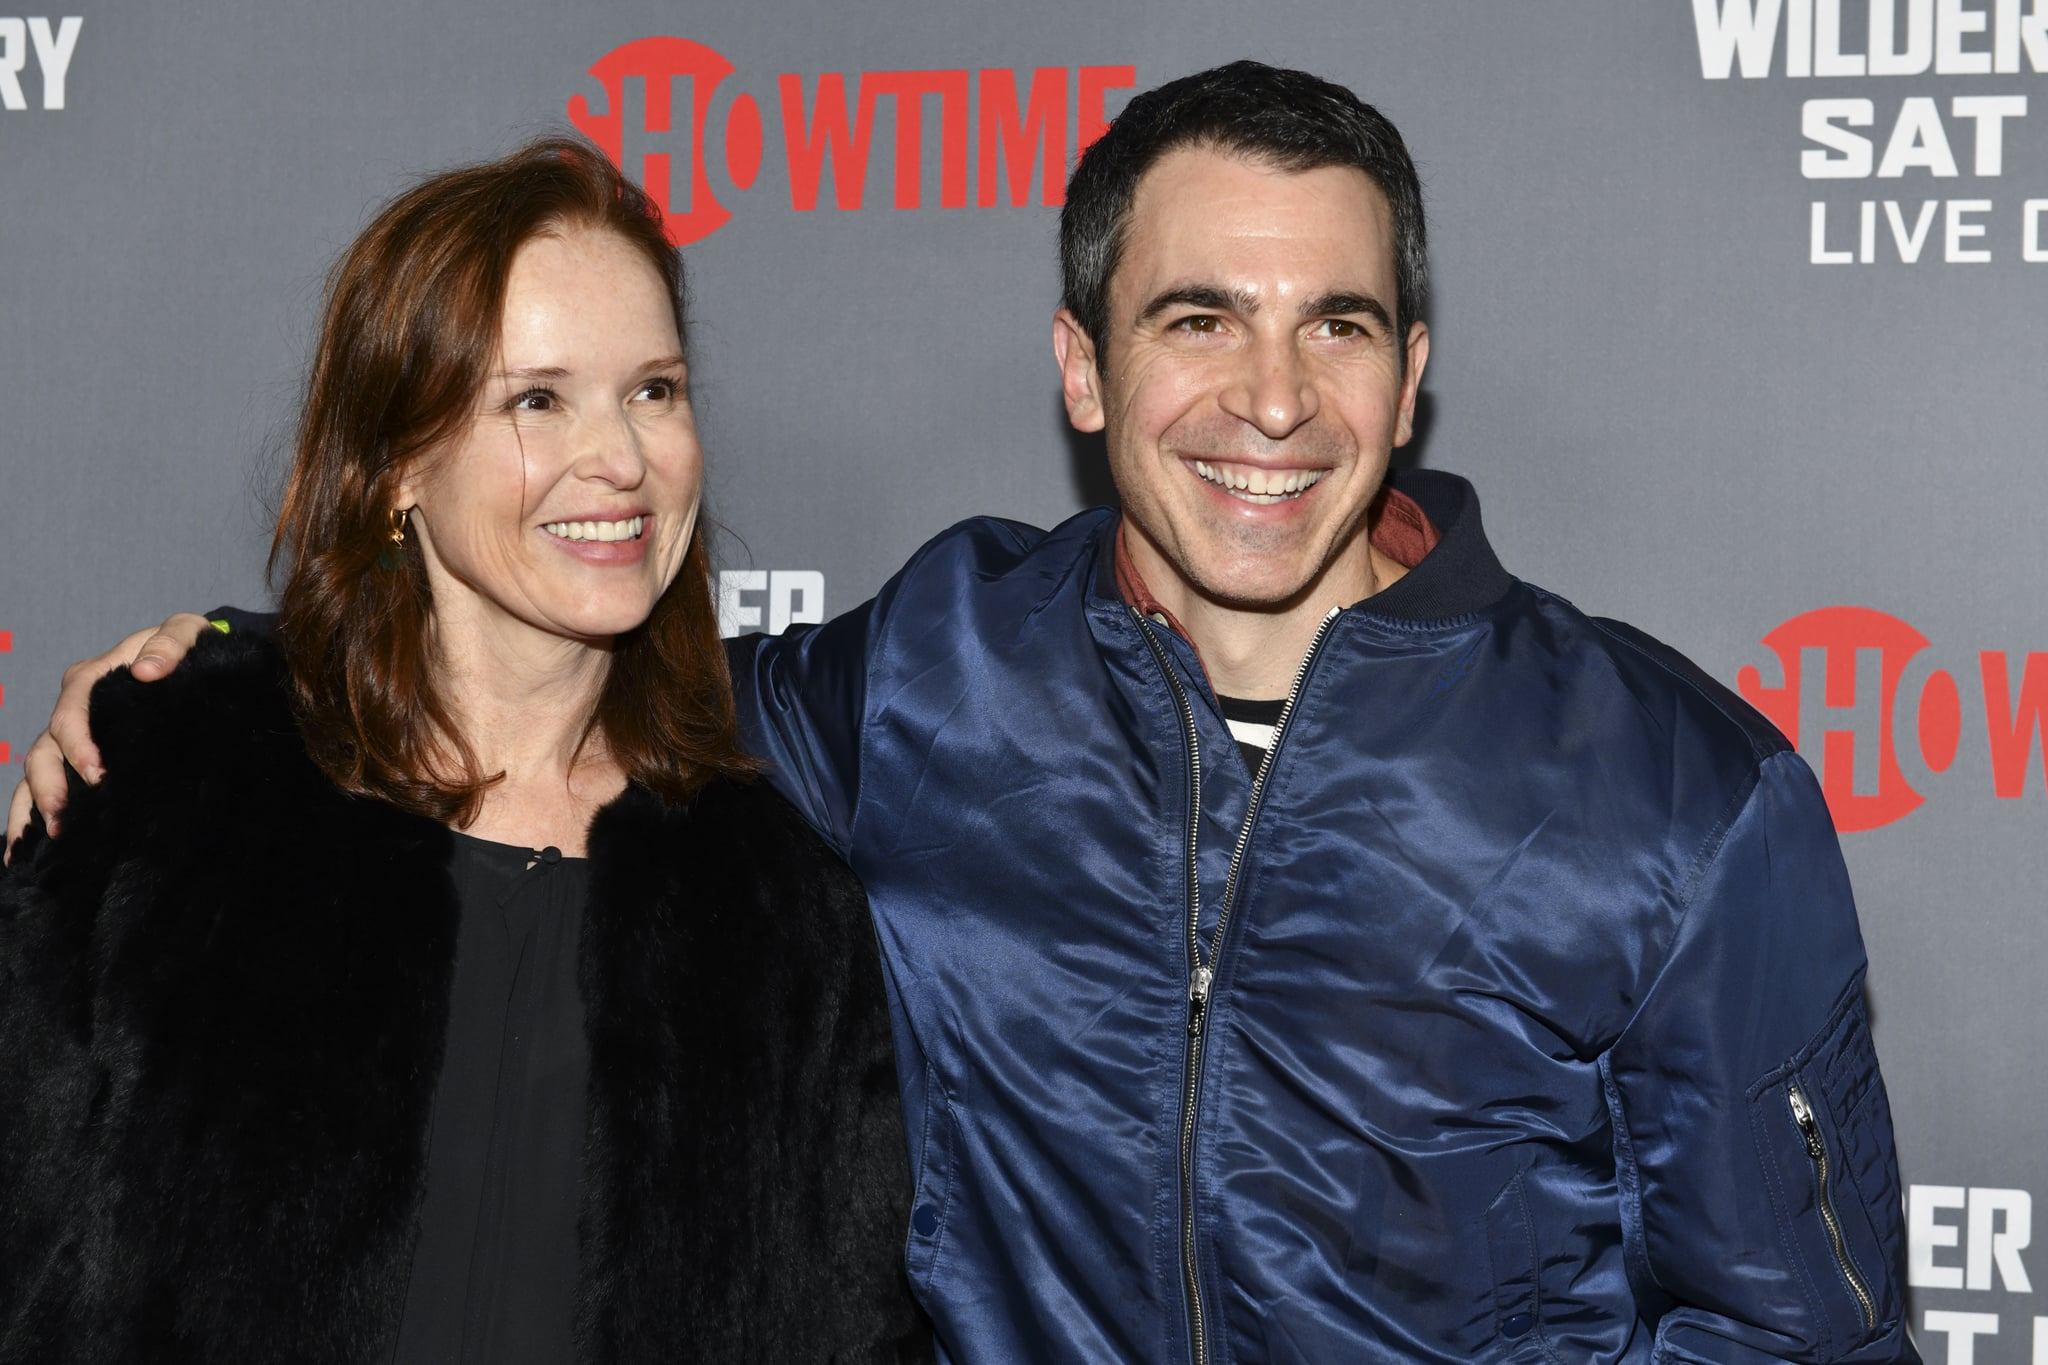 LOS ANGELES, CALIFORNIA - DECEMBER 01: (L-R) Jennifer Todd and Chris Messina attend the Heavyweight Championship of The World